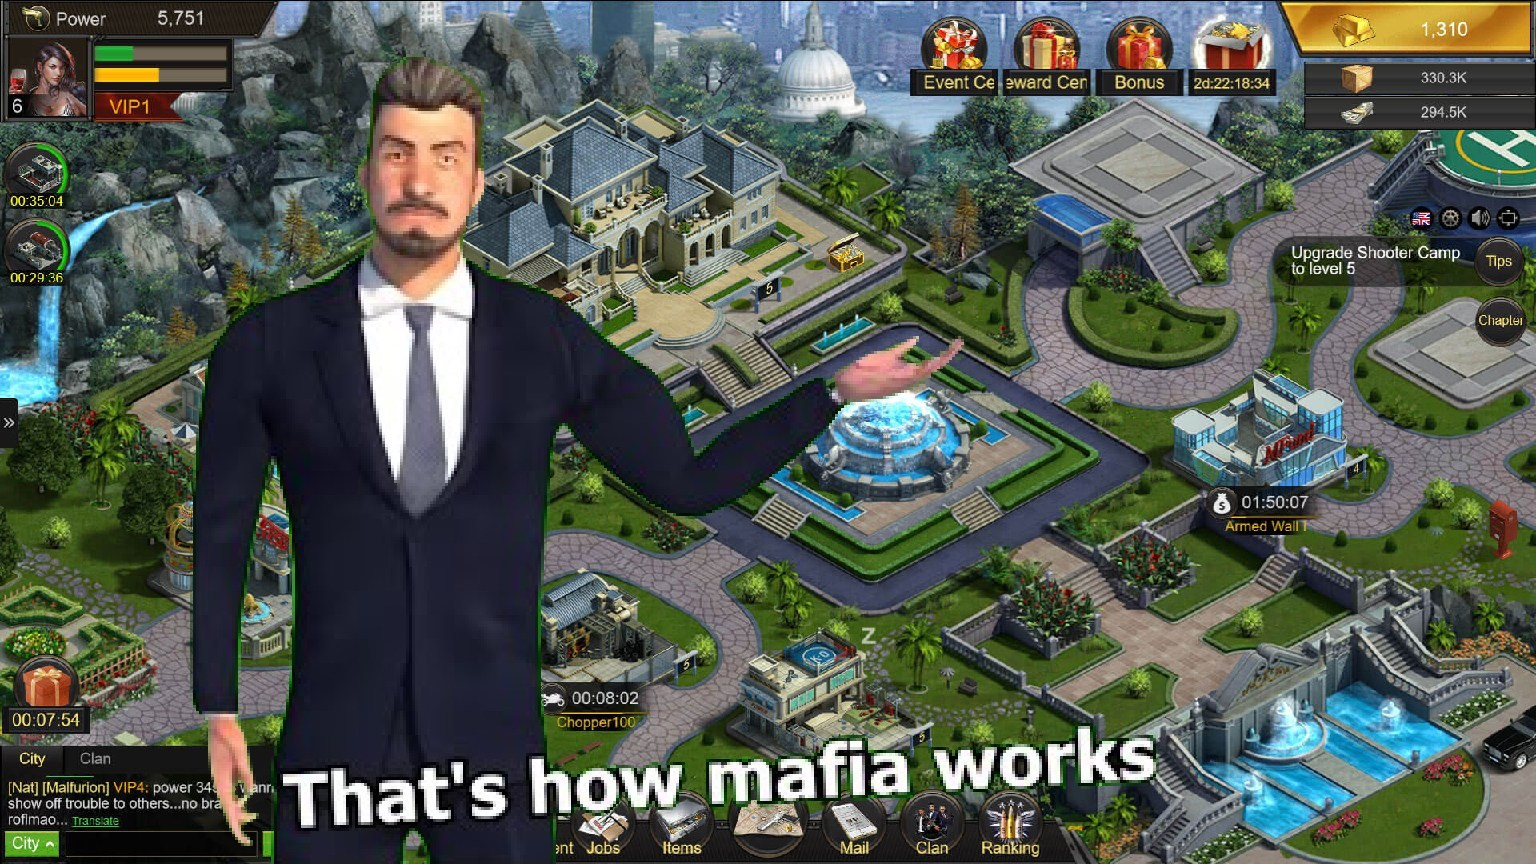 mafia city featured - Mafia City Mod Apk - How To Get Unlimited Resources & Money